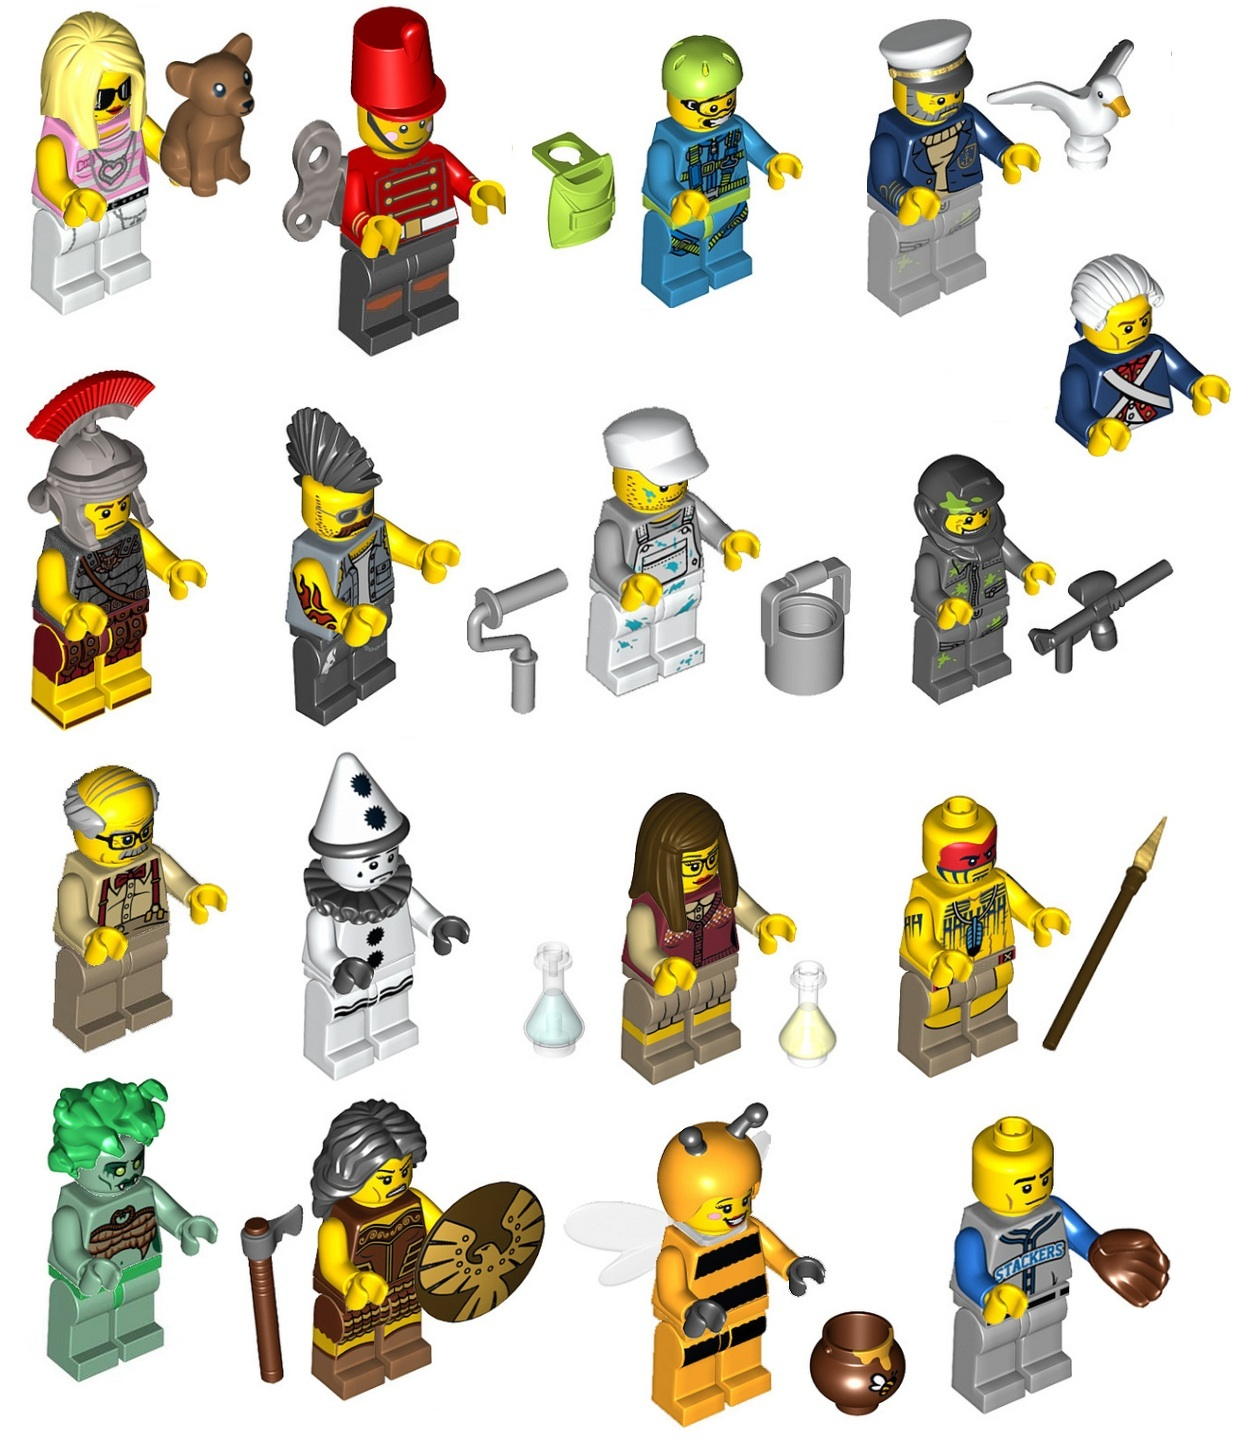 The Collectible Minifigures Series 10 and 11 lineups have been